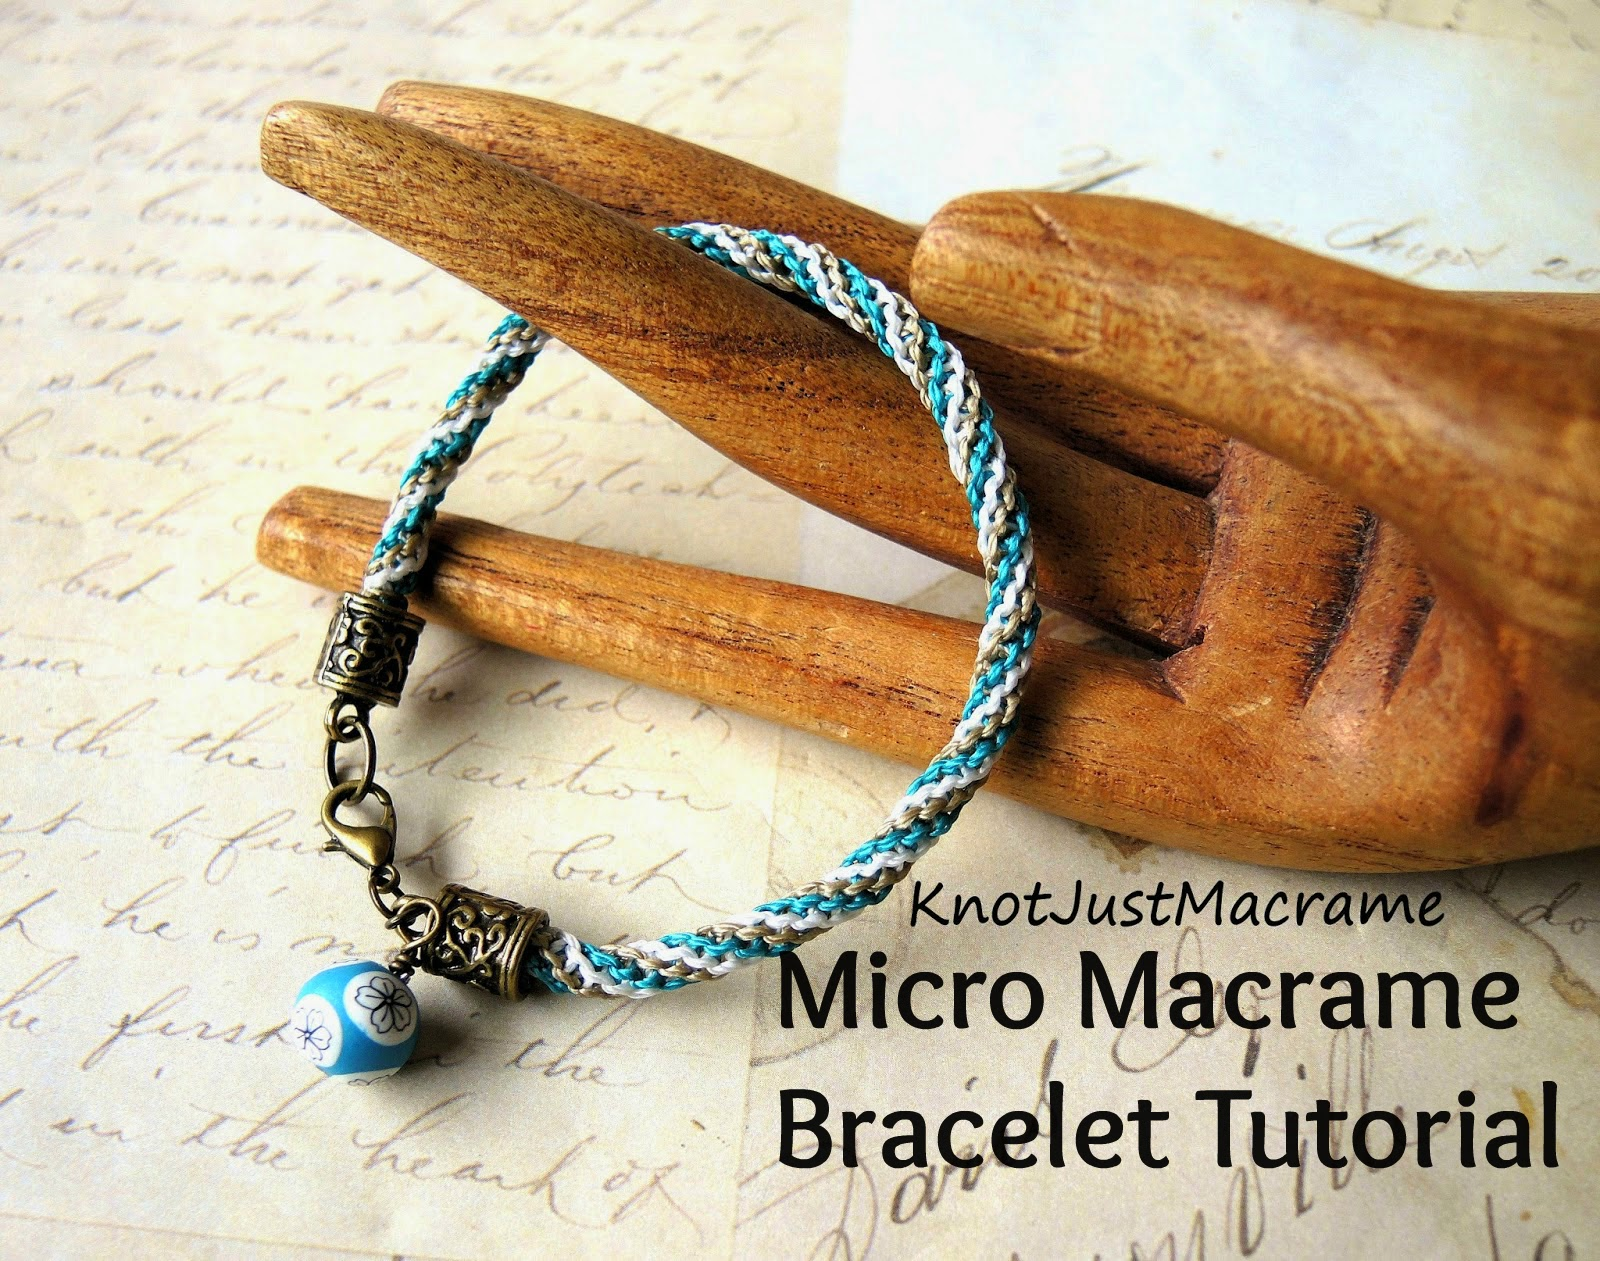 macrame bracelet tutorials knot just macrame by sherri stokey my gift to you 1021